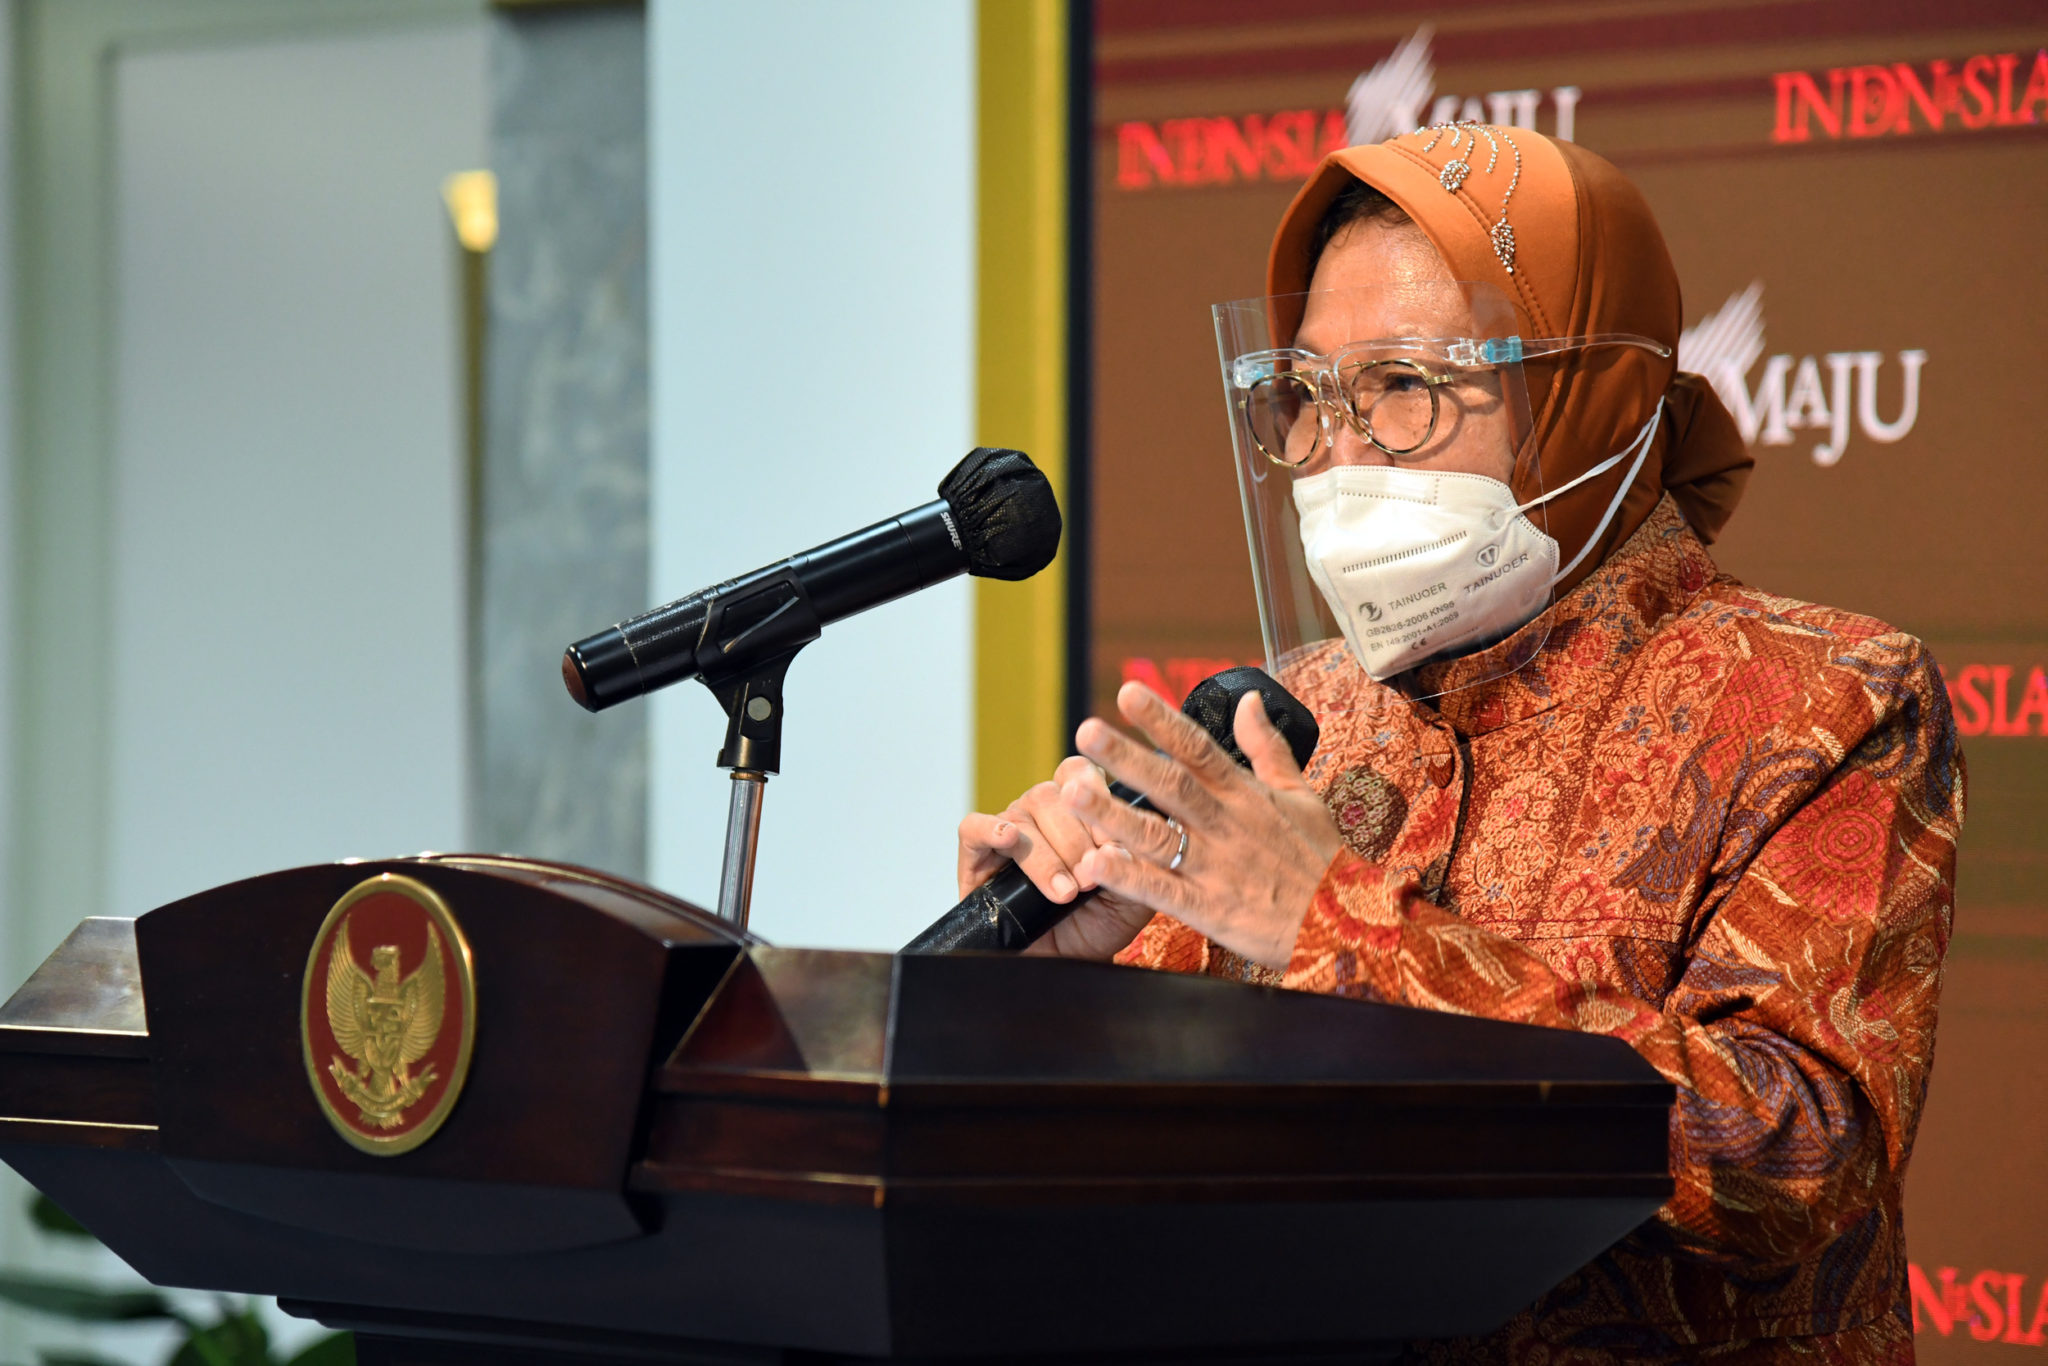 Risma: Early 2021, Three Social Assistance Services Channels Simultaneously Throughout Indonesia